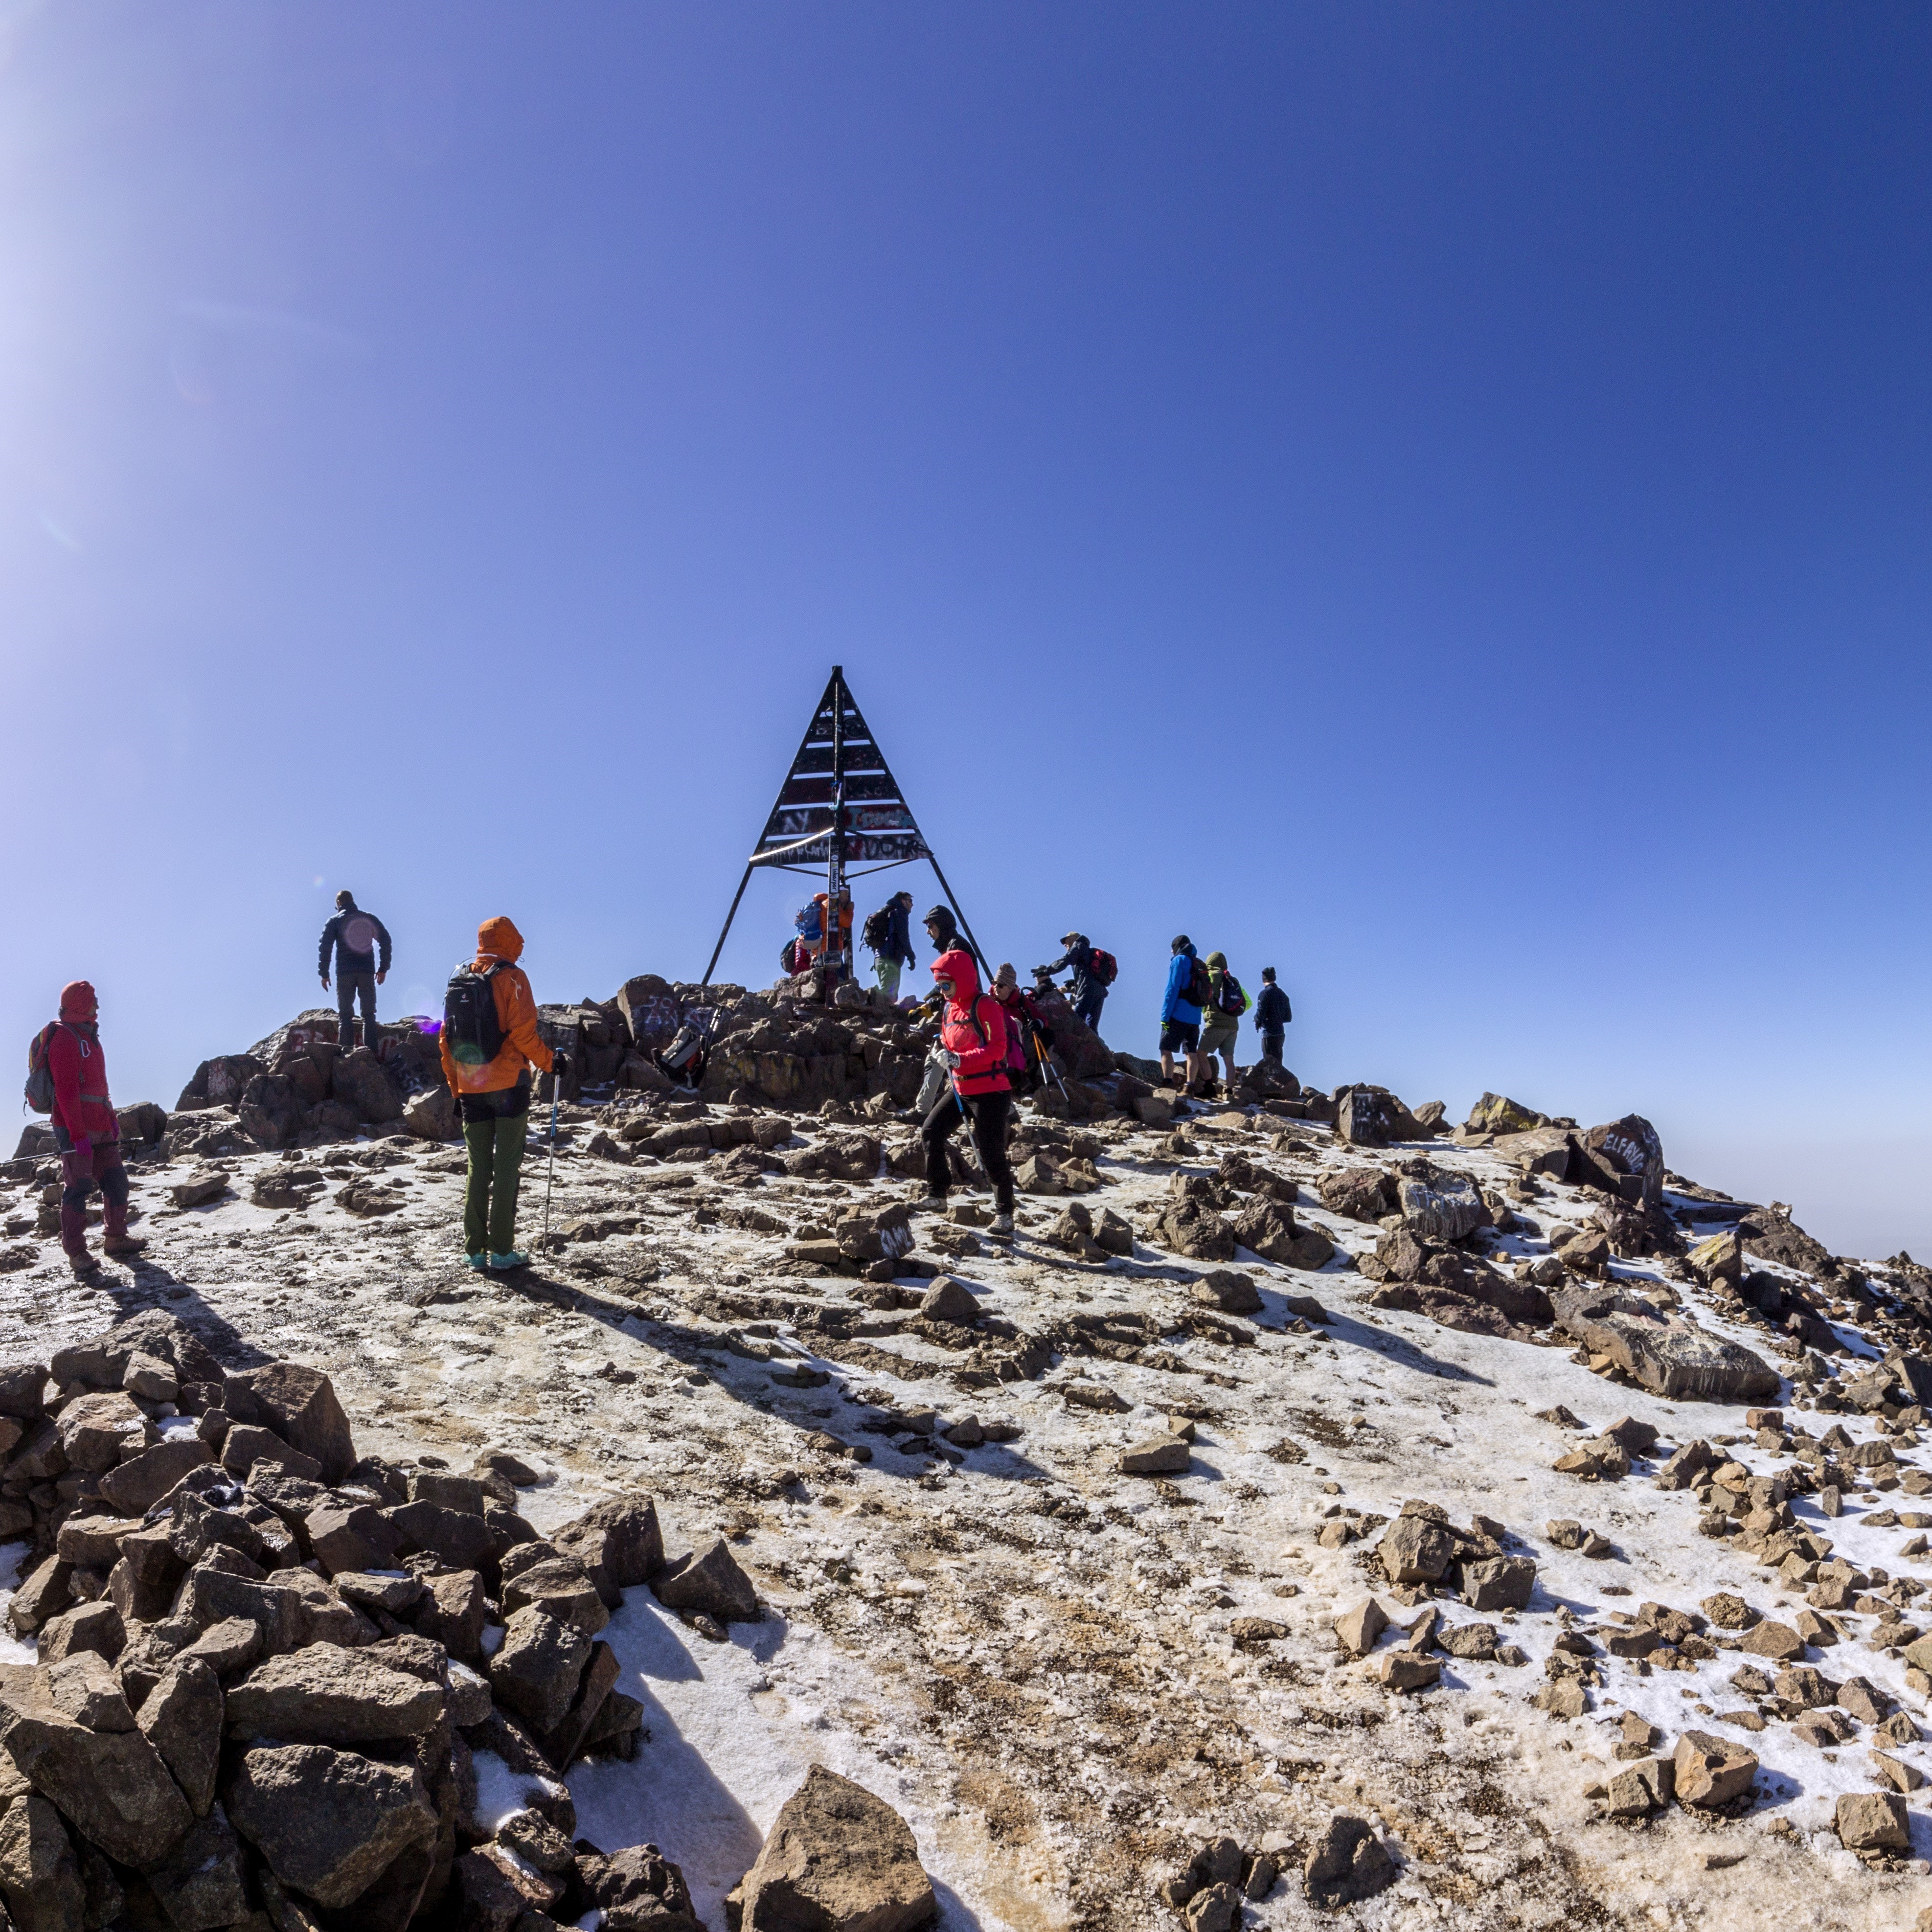 summit of Mount Toubkal in the High Atlas Mountains in Morocco